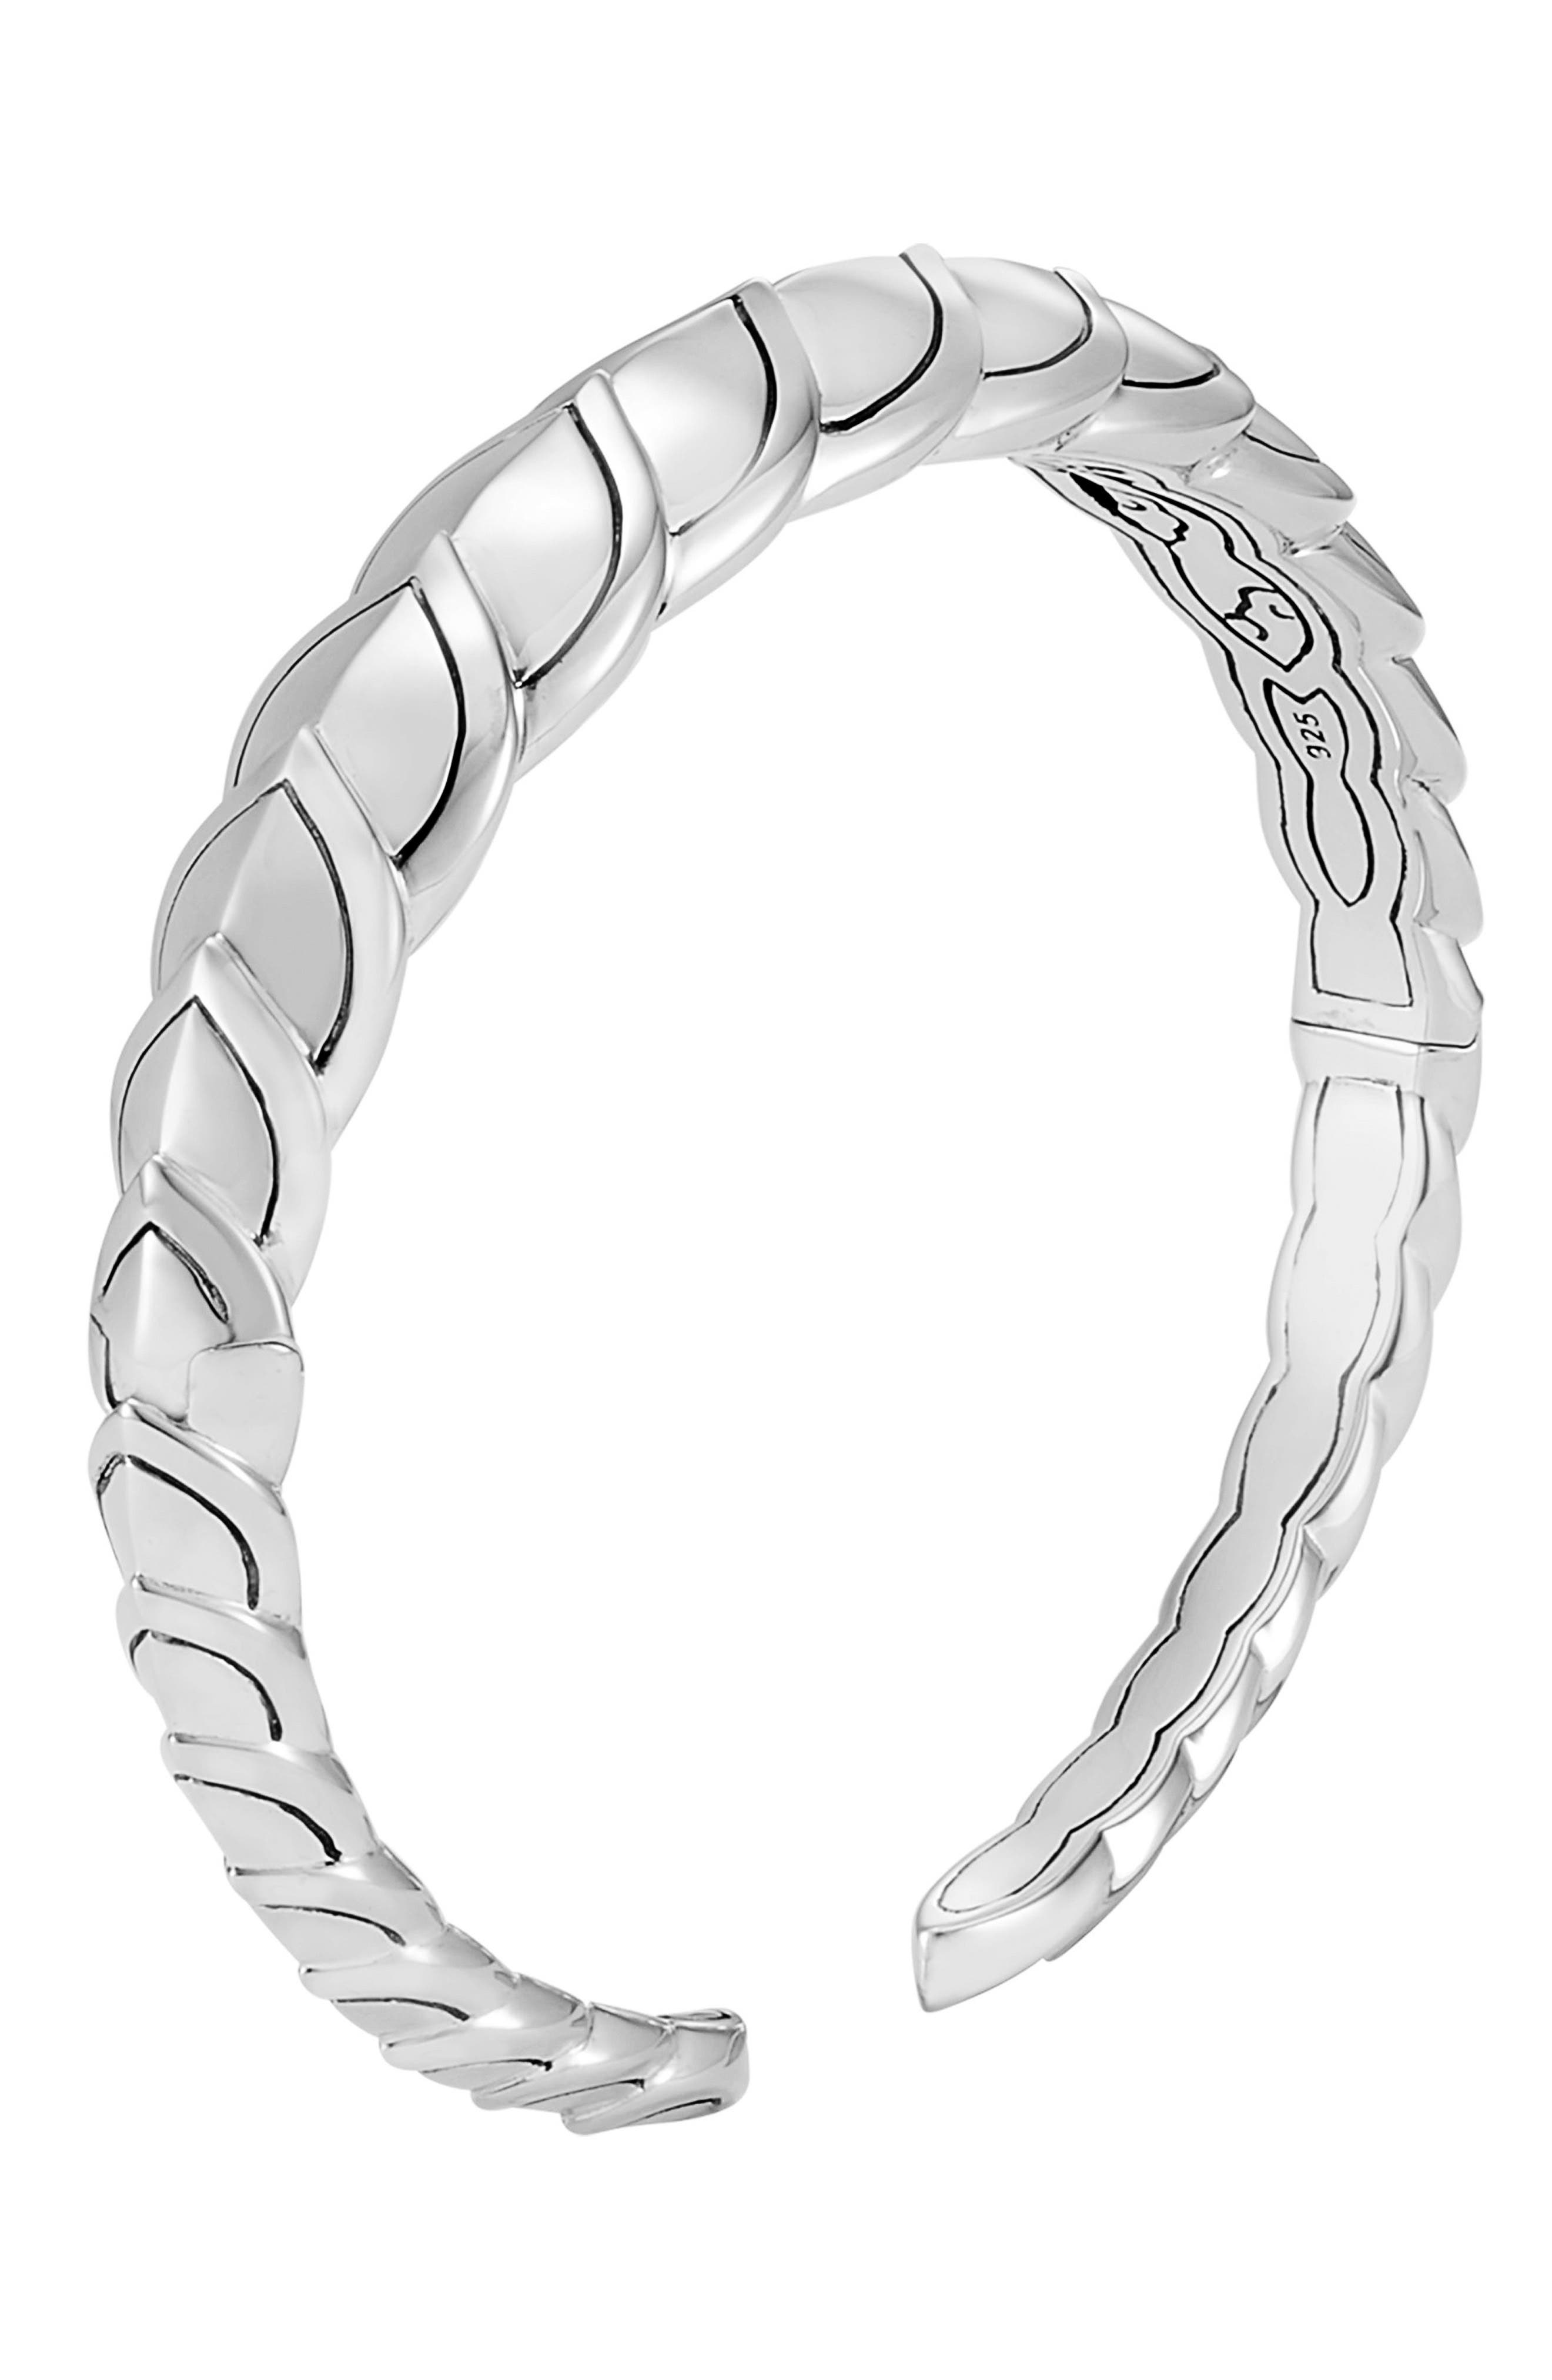 Legends Naga Small Flex Cuff Bracelet,                         Main,                         color, Silver